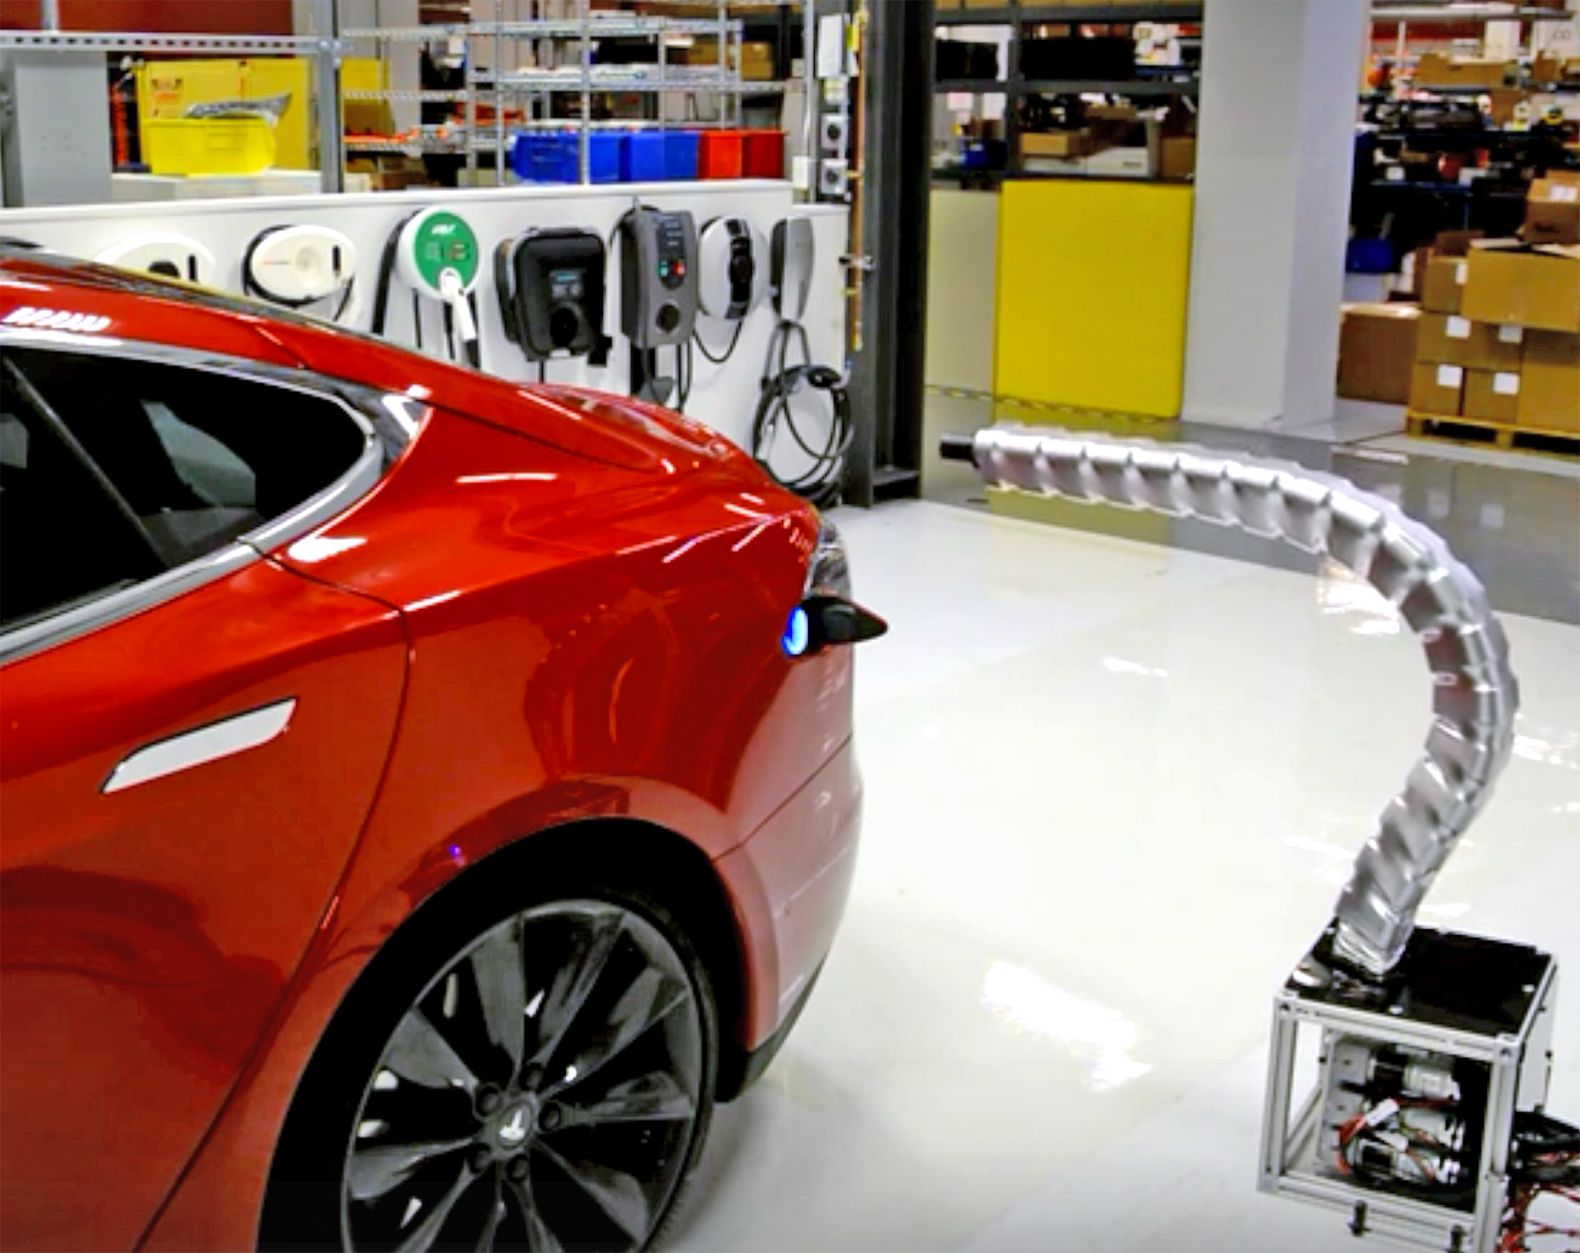 Tesla unveils futuristic robotic snake charger for electric vehicles